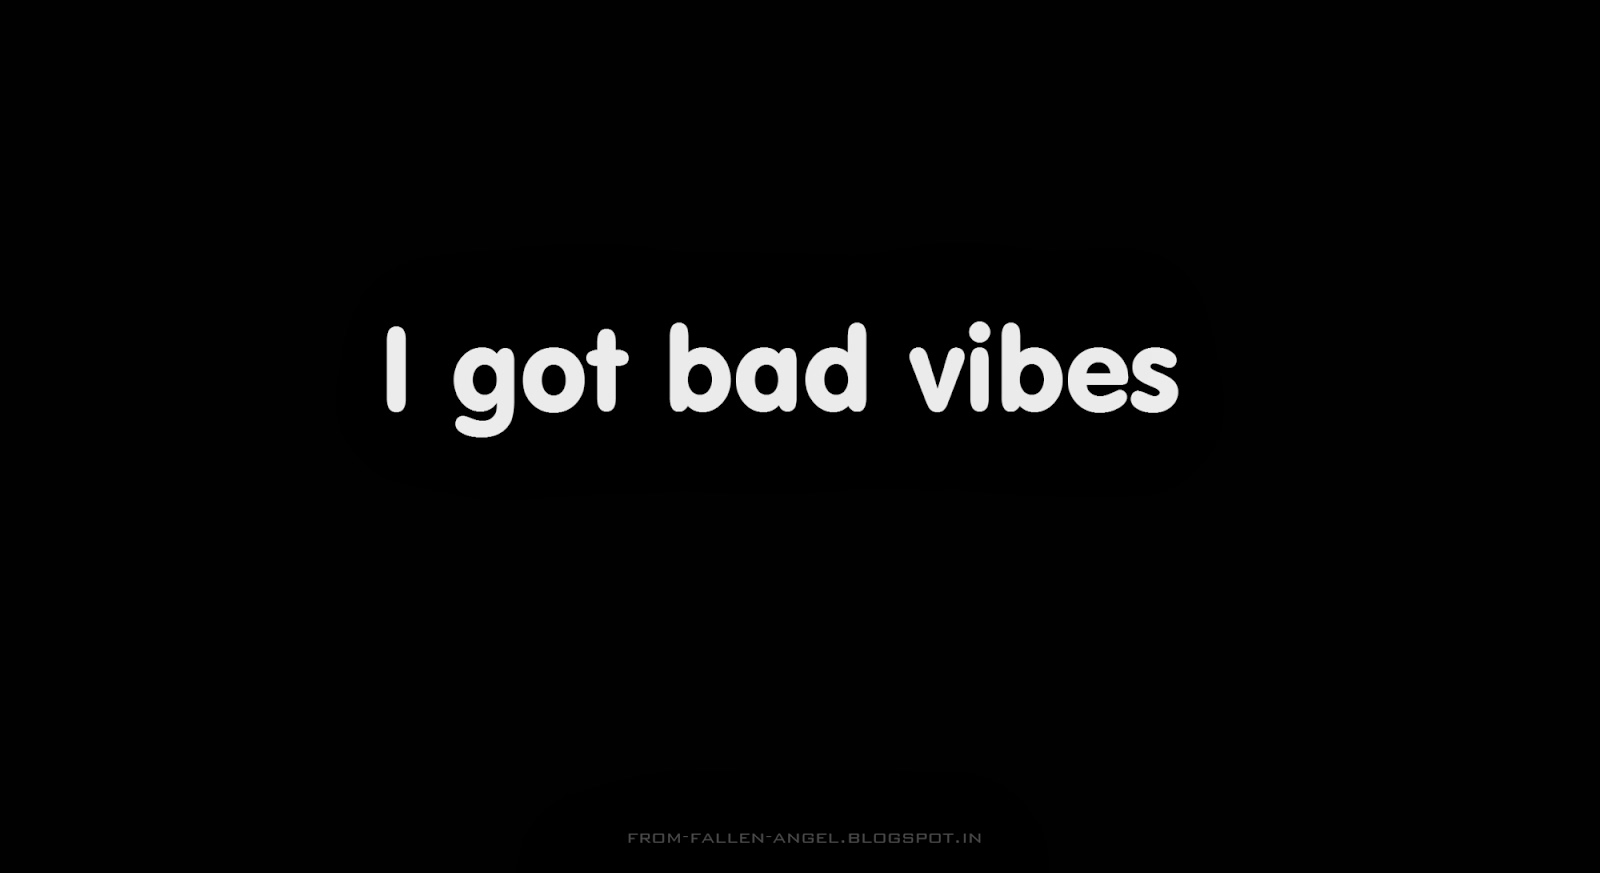 I got bad vibes